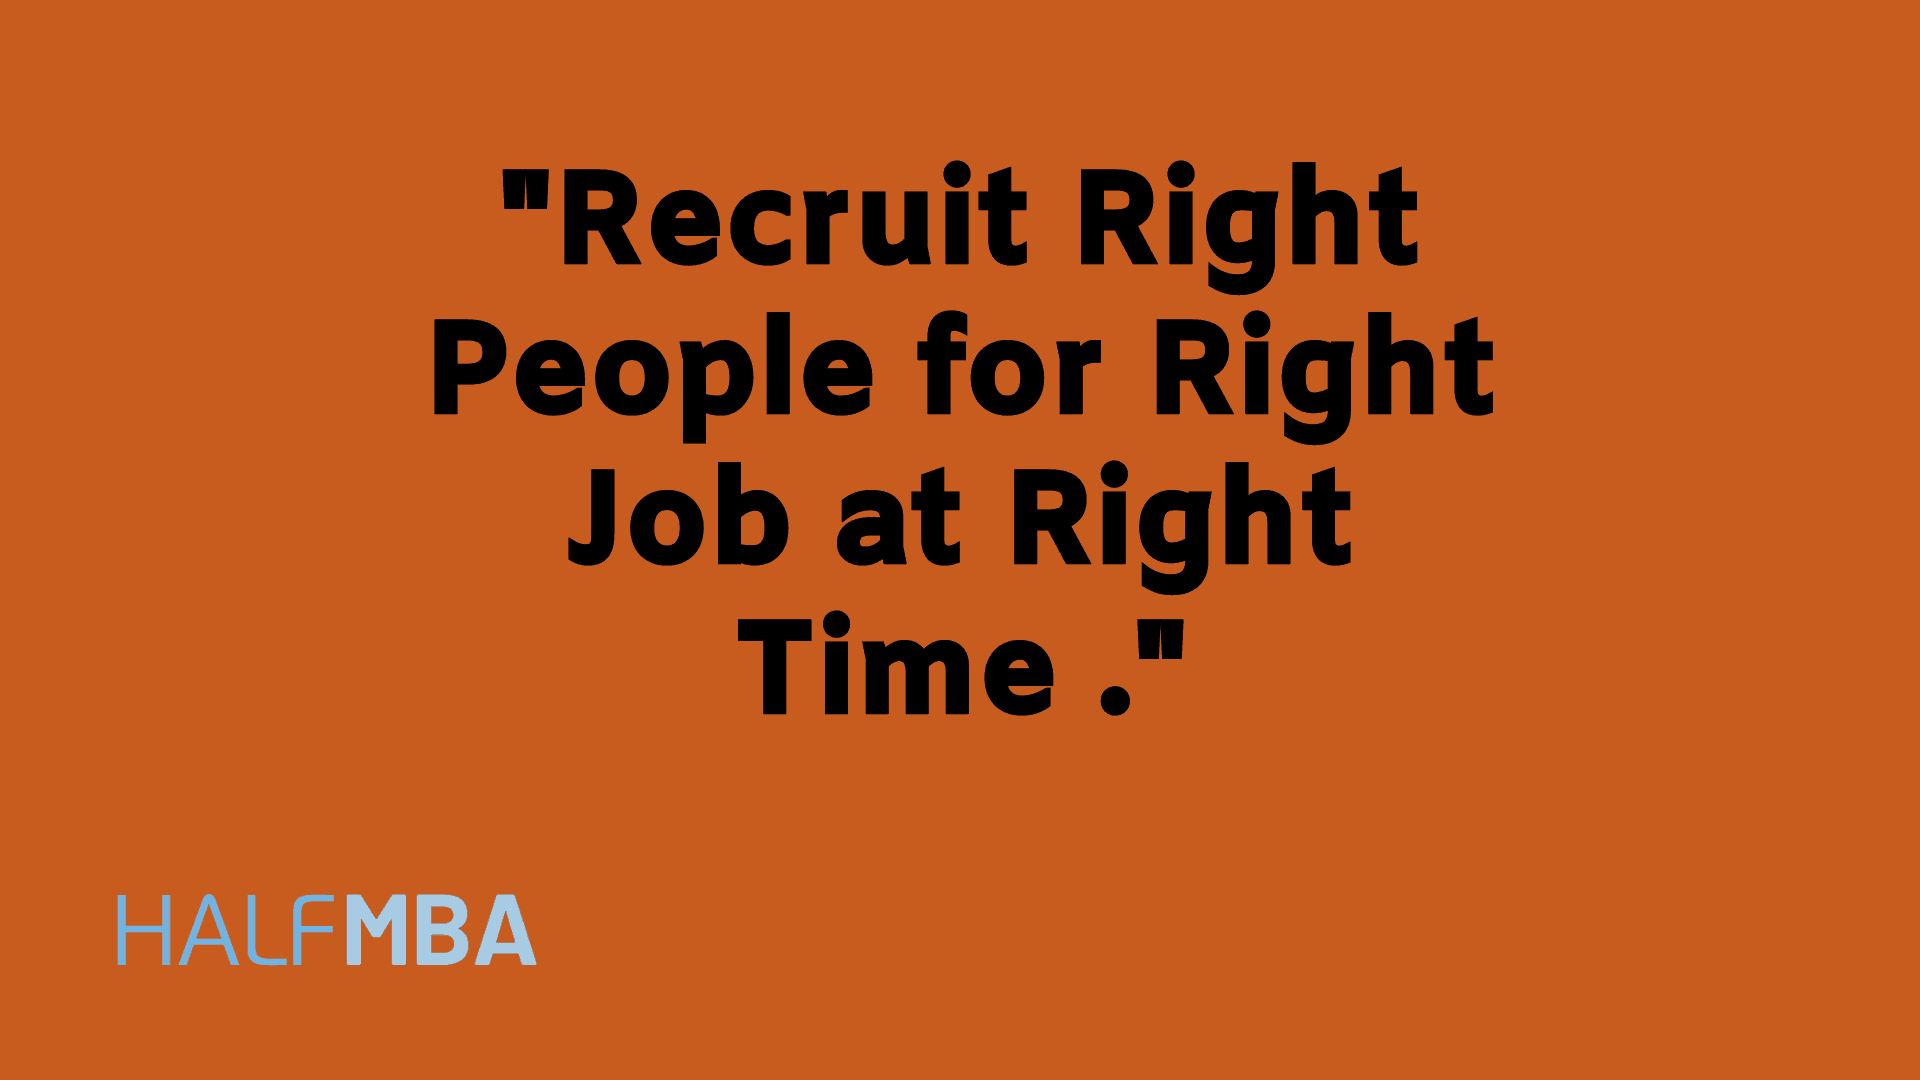 Recruit right people at right time for right work